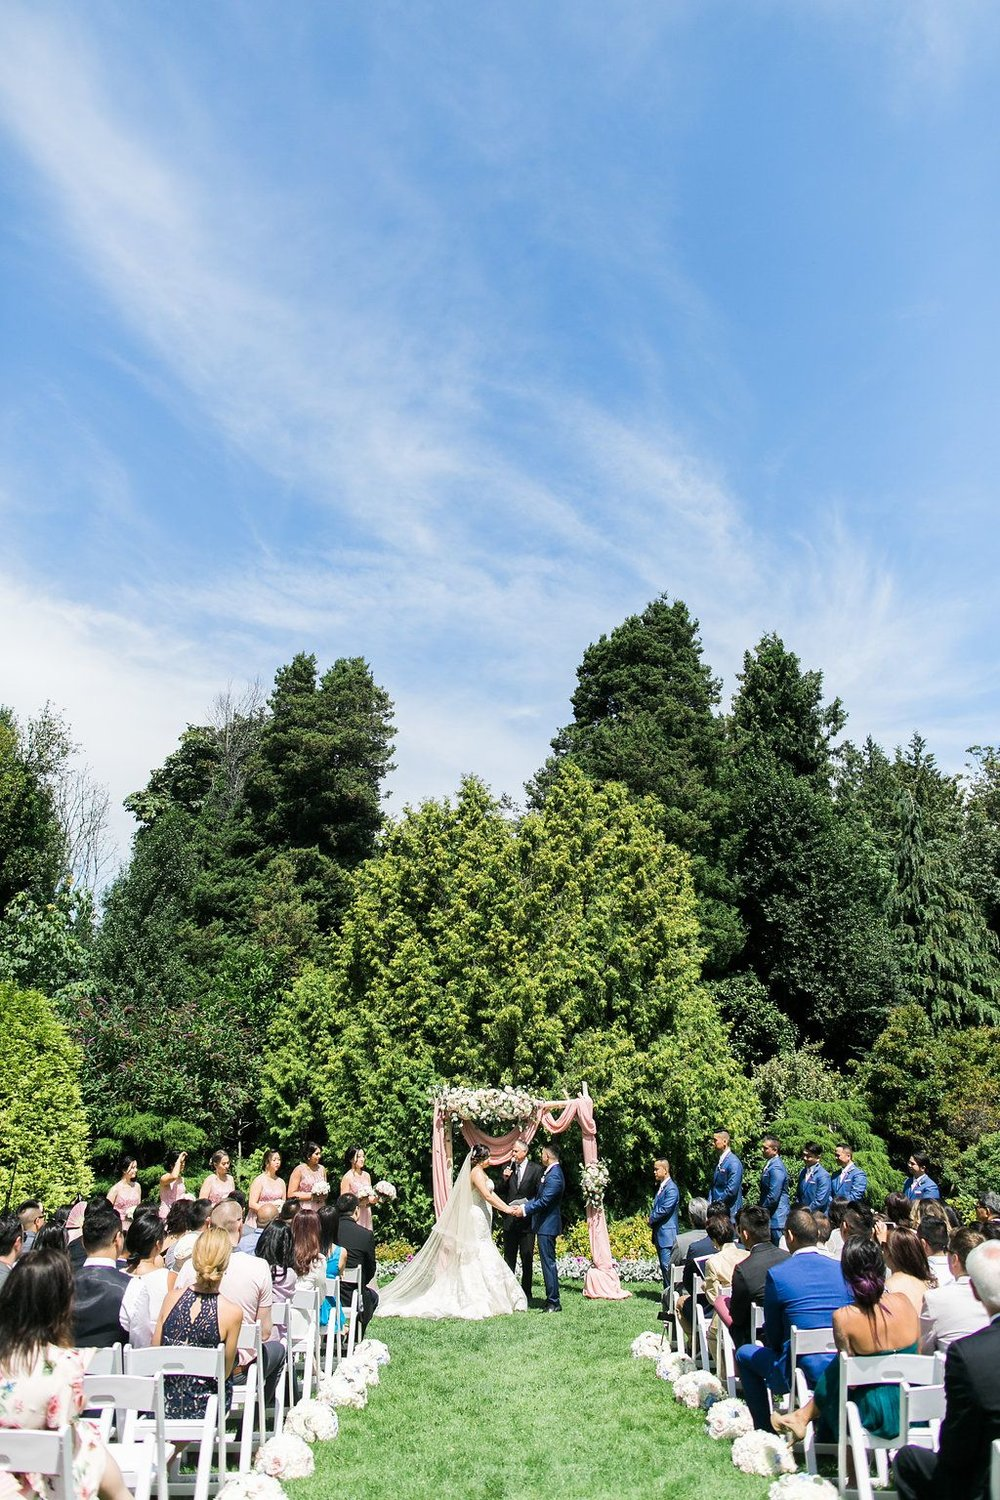 Cecil-green-park-wedding-ceremony-with-arch